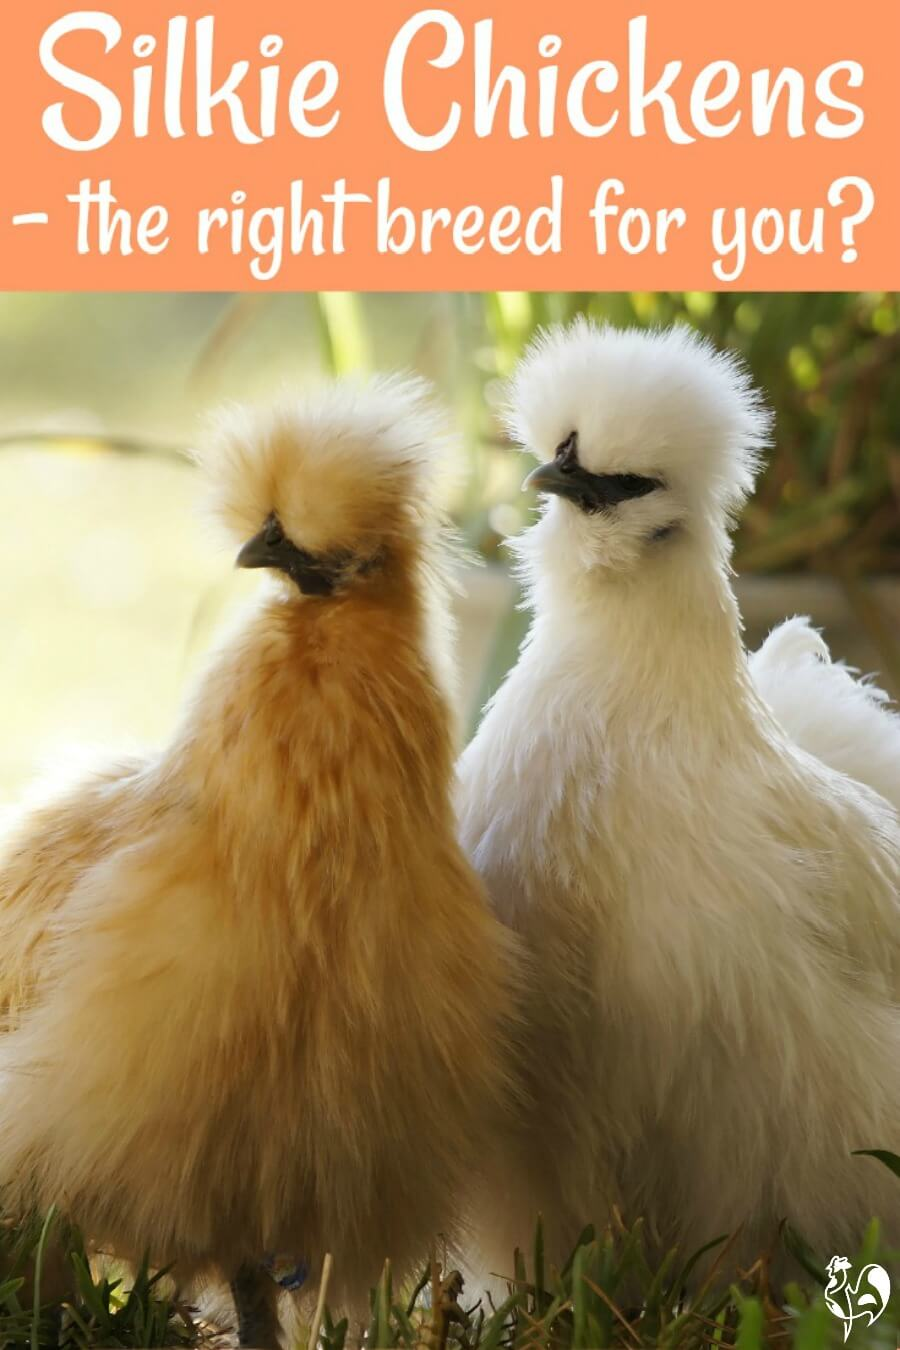 Silkie chickens: cuddly, kind, non-aggressive roos, good broodies - but are they the right chicken breed for your family? Find out, here!